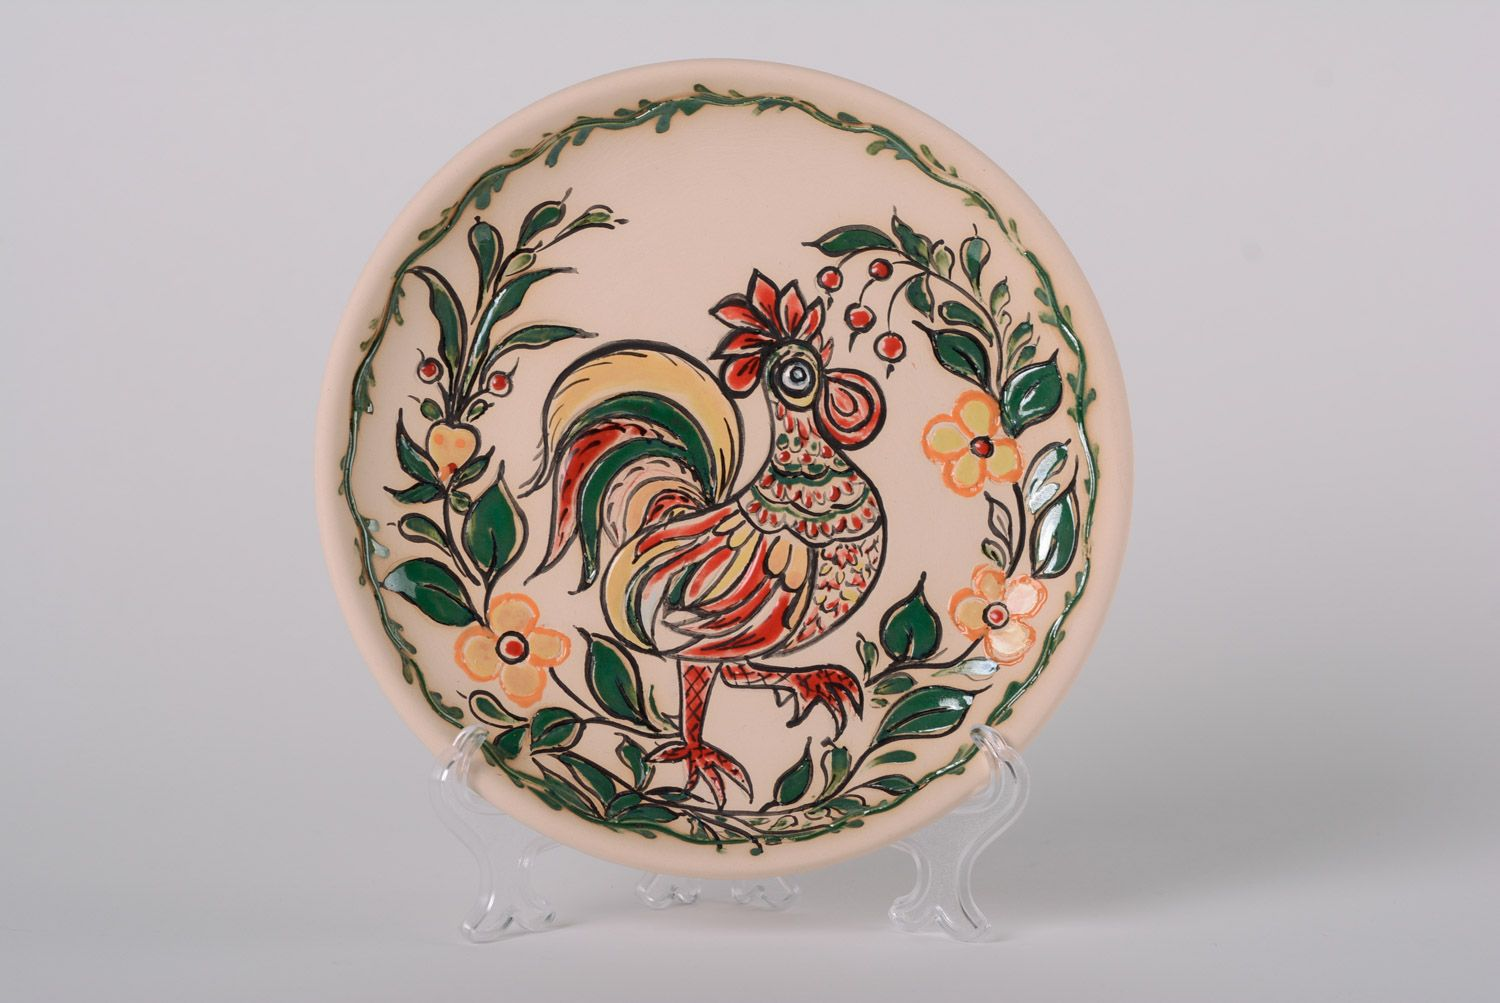 desktop decoration Decorative handmade clay plate with glaze painting Rooster interior decor ideas - MADEheart. & MADEHEART u003e Decorative handmade clay plate with glaze painting ...